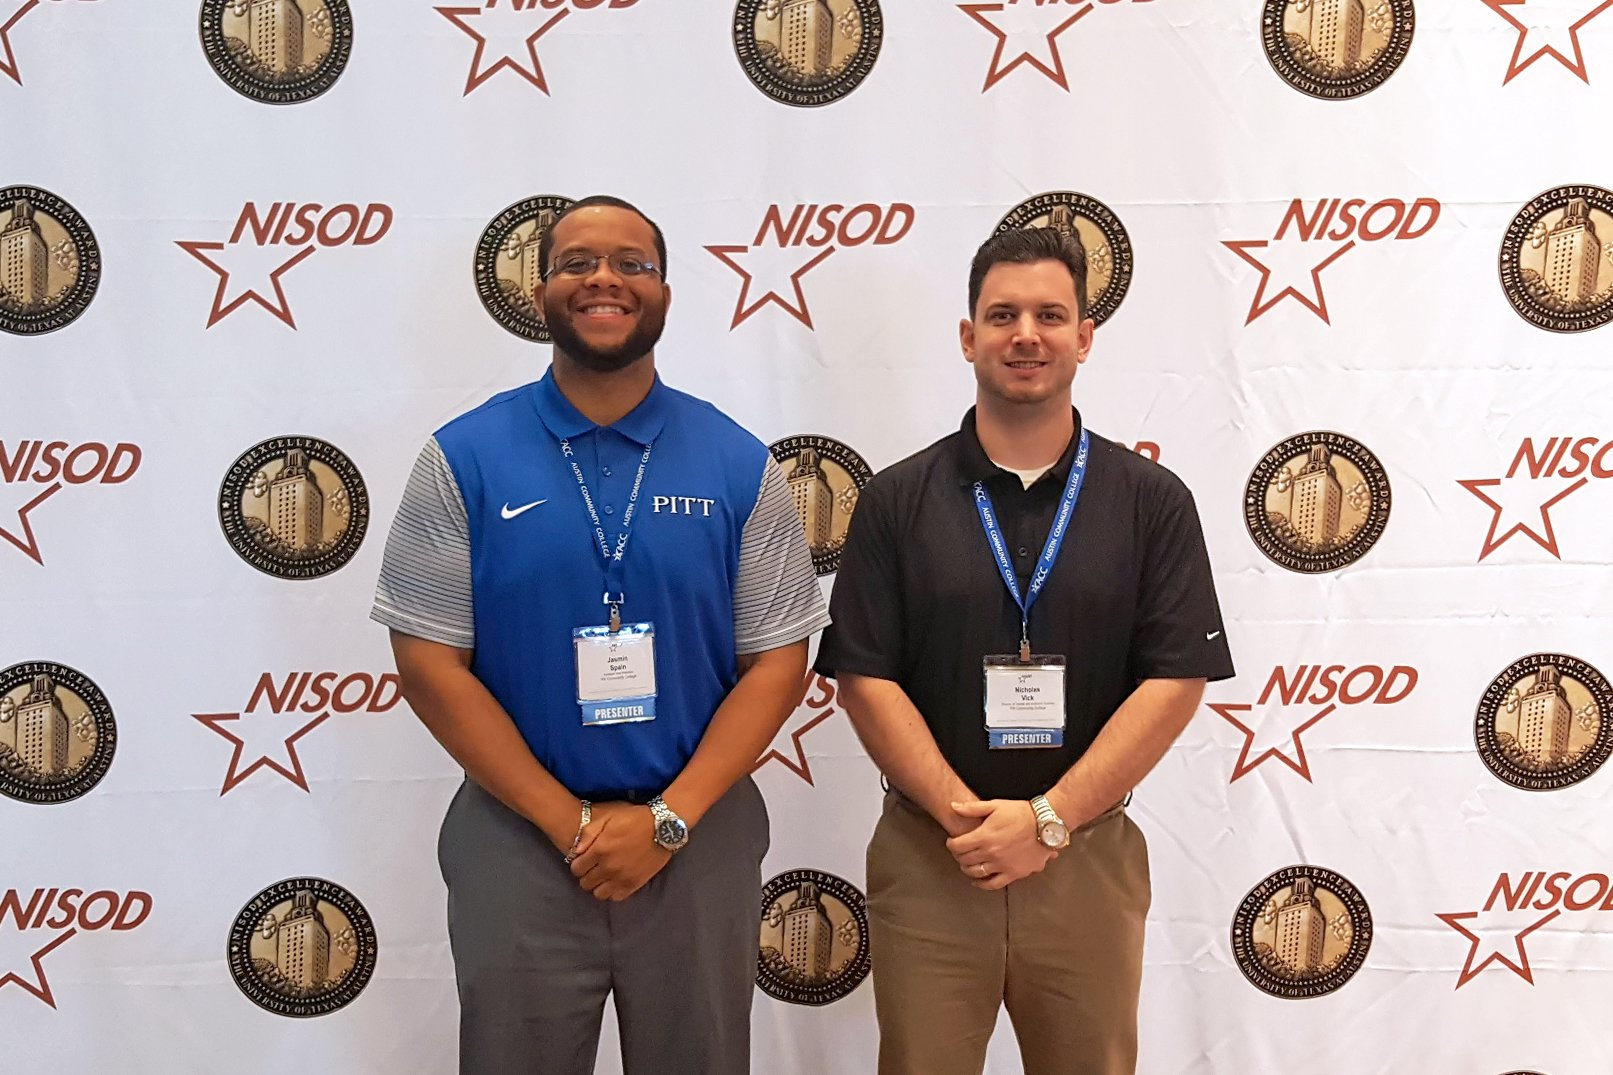 Jasmin Spain and Nicholas Vick pose for a photo in front of a NISOD backdrop.